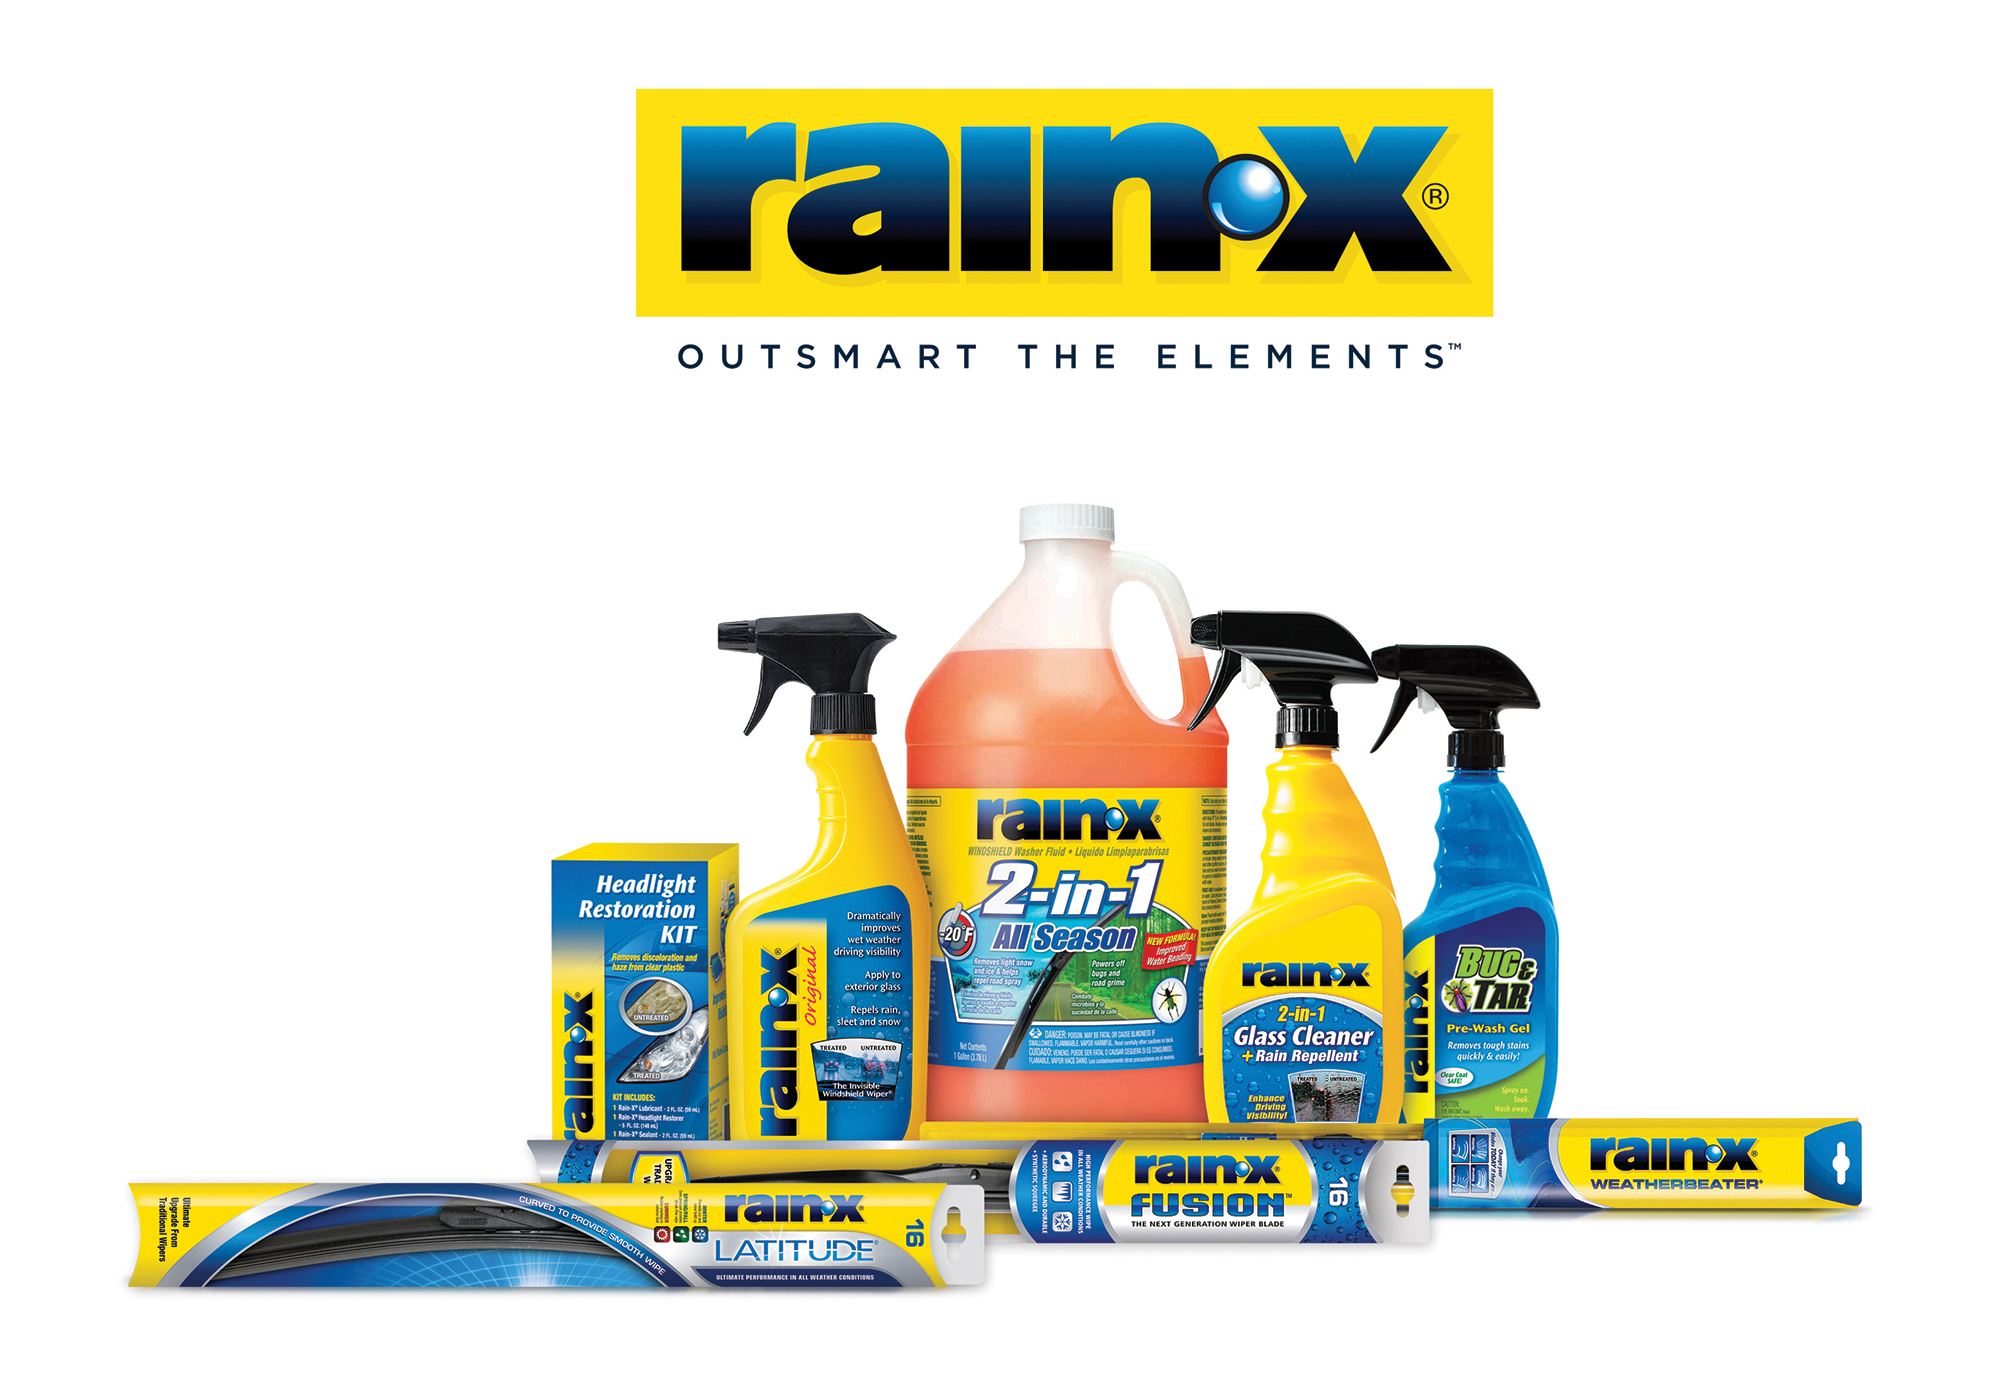 Outsmart the Elements(TM) with Rain-X wiper blades, windshield treatments, washes, waxes and tar and bug repellent products.